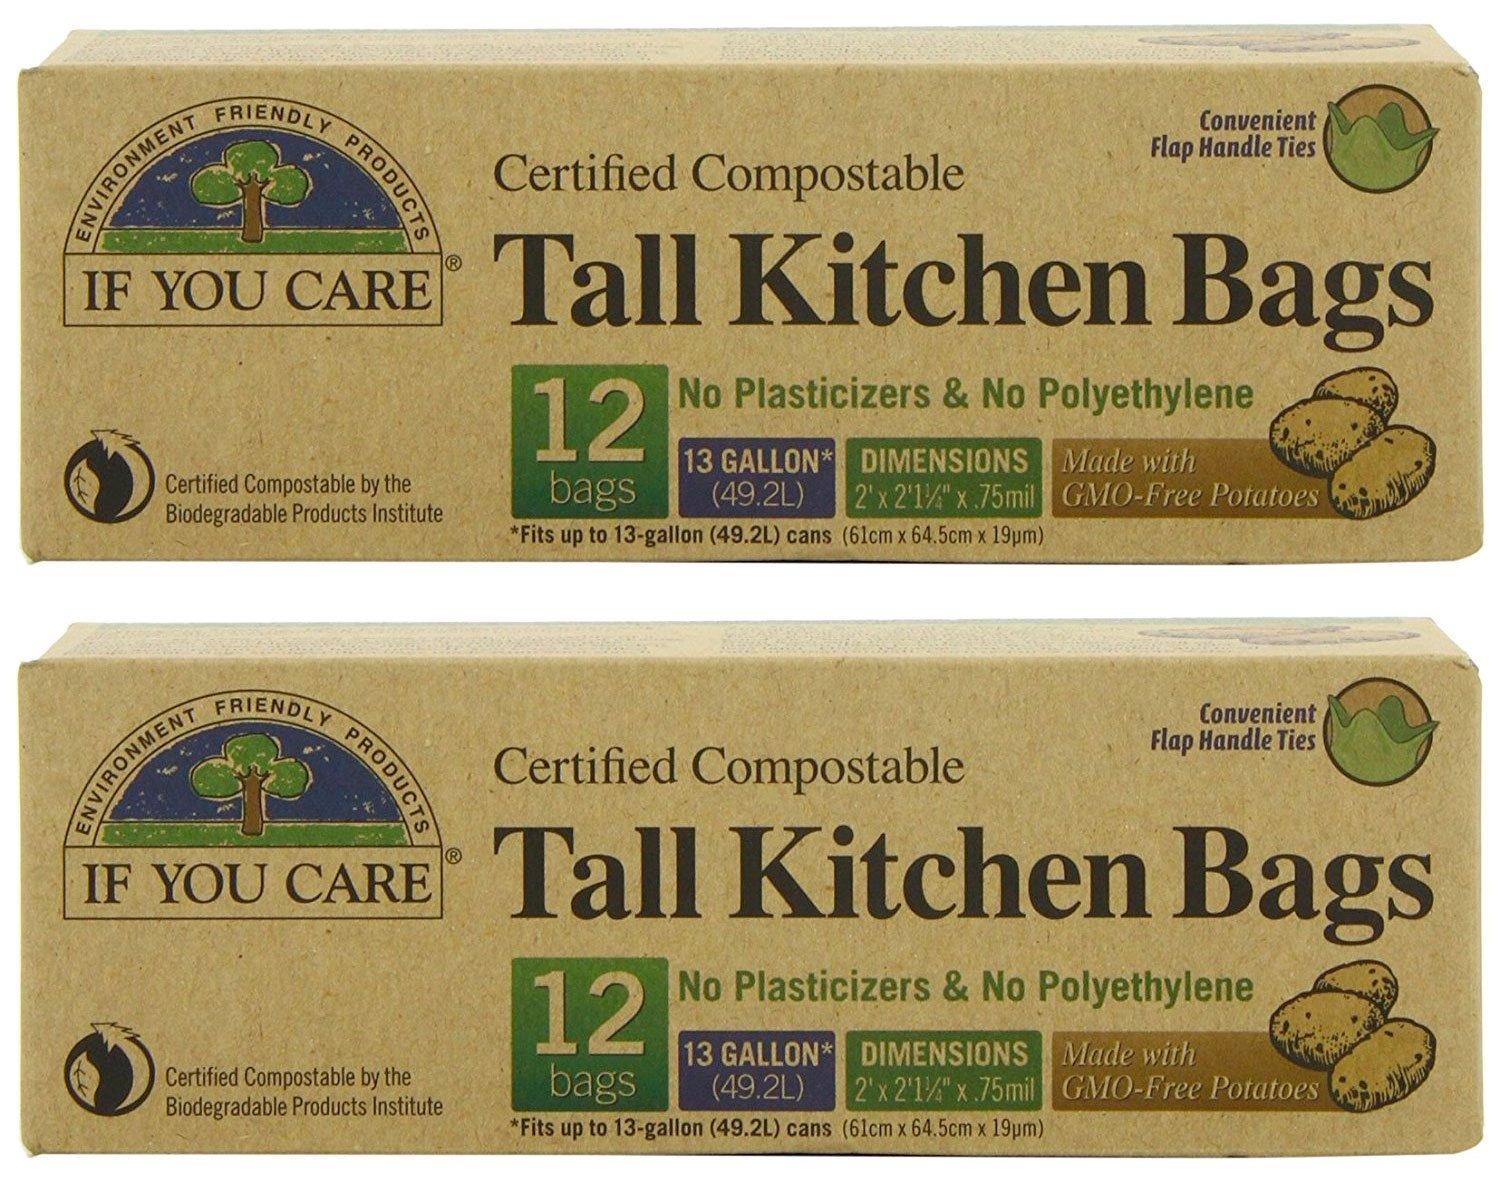 IF YOU CARE Certified Compostable Tall Kitchen Bags, 12 Count (Pack of 2)